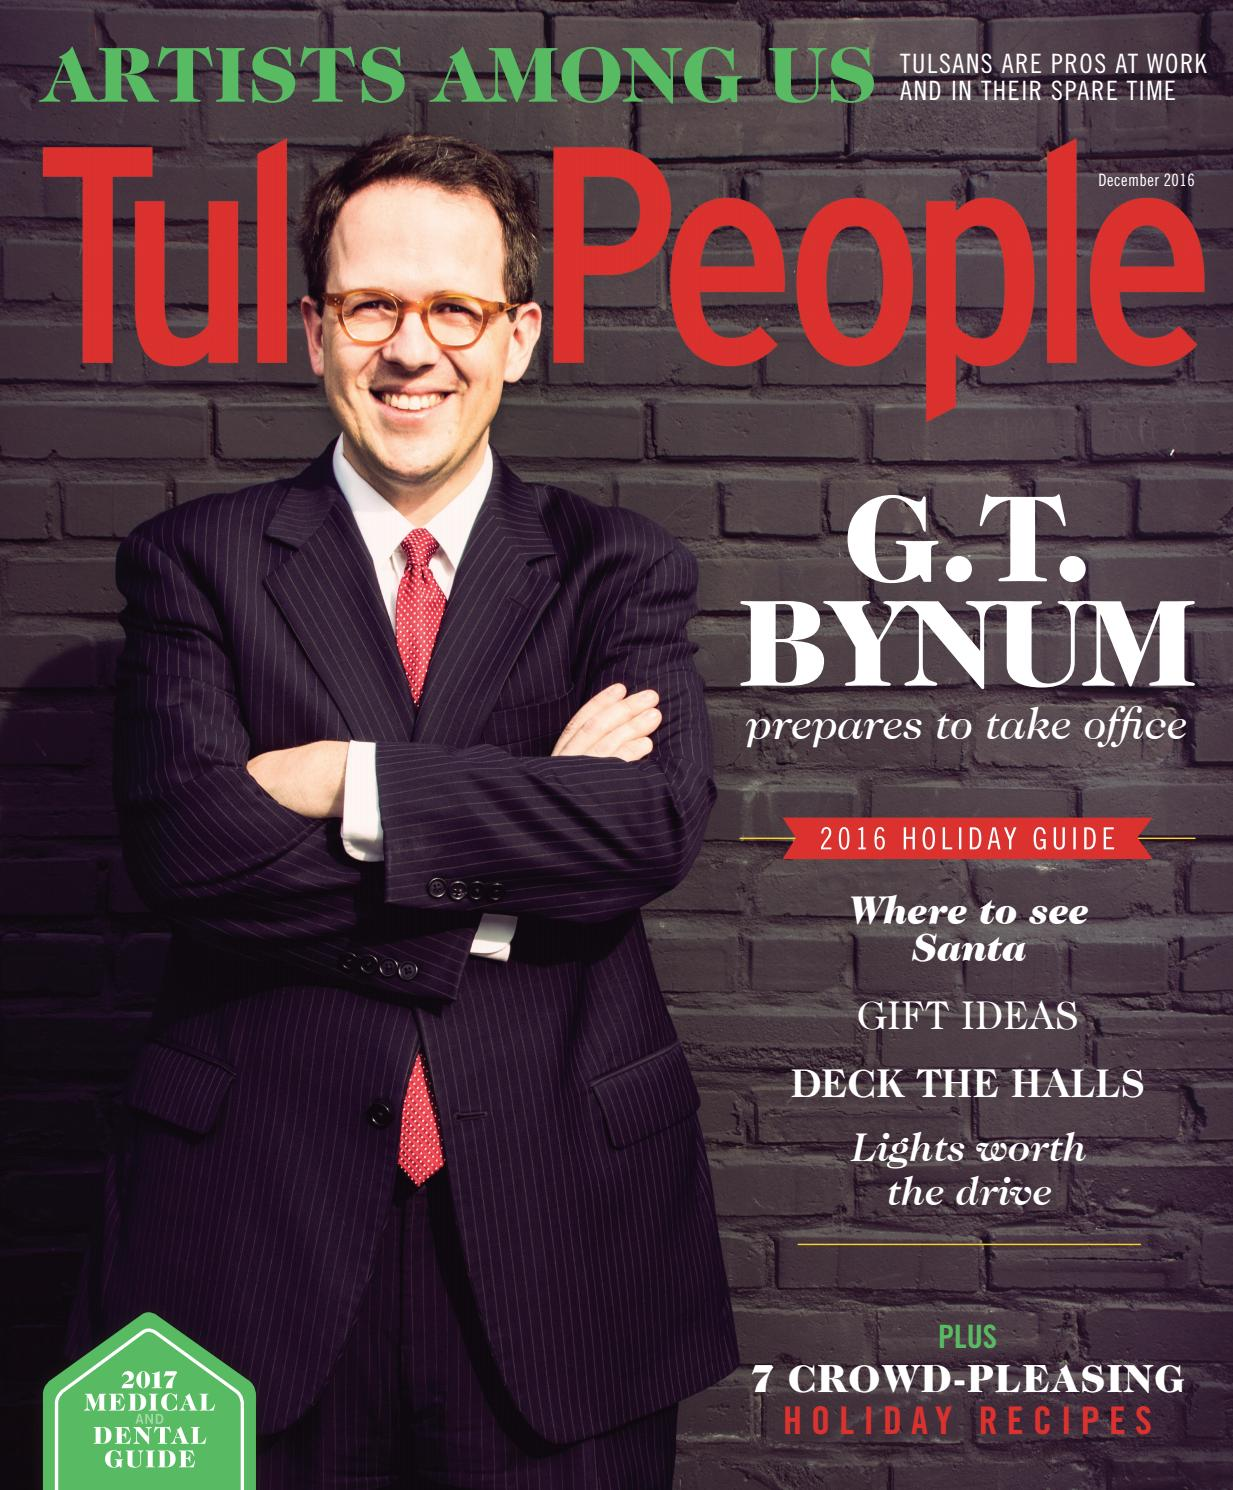 afb7e8a16 Tulsa People December 2016 by TulsaPeople - issuu